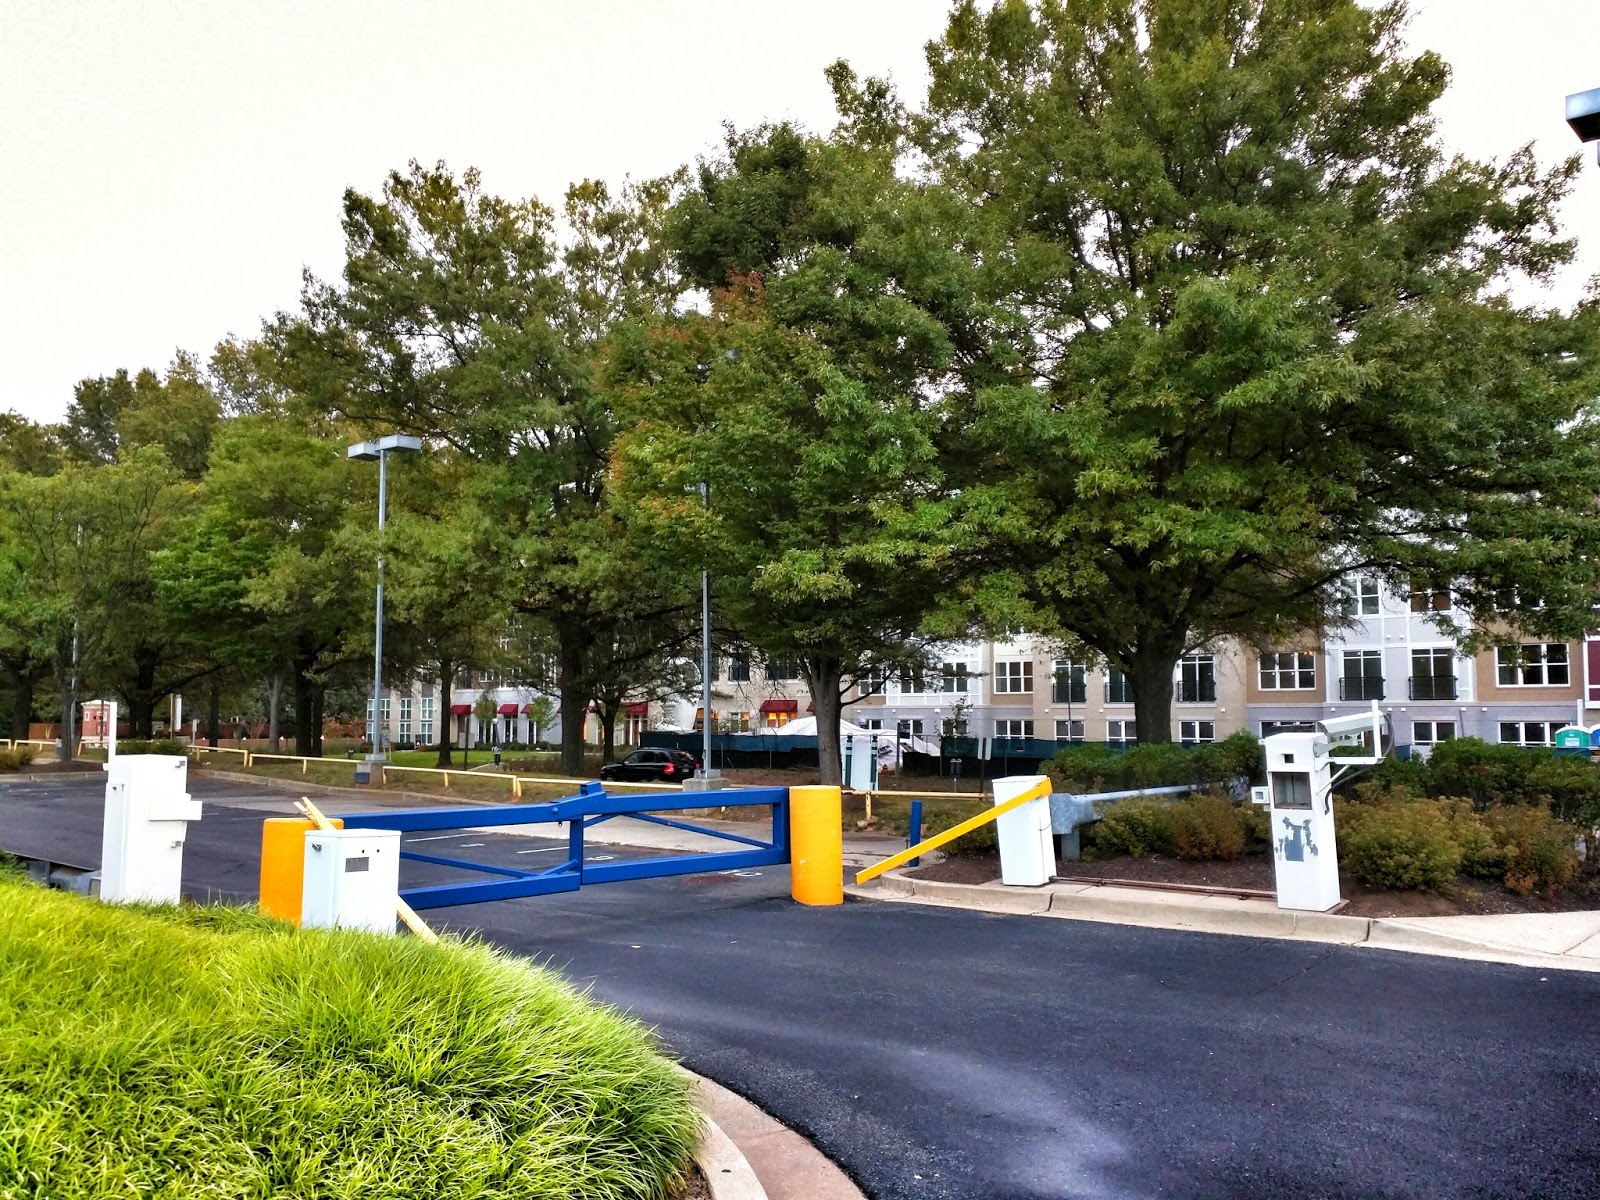 Rockville Nights Carmax Site Annexation Plan Approved By Rockville